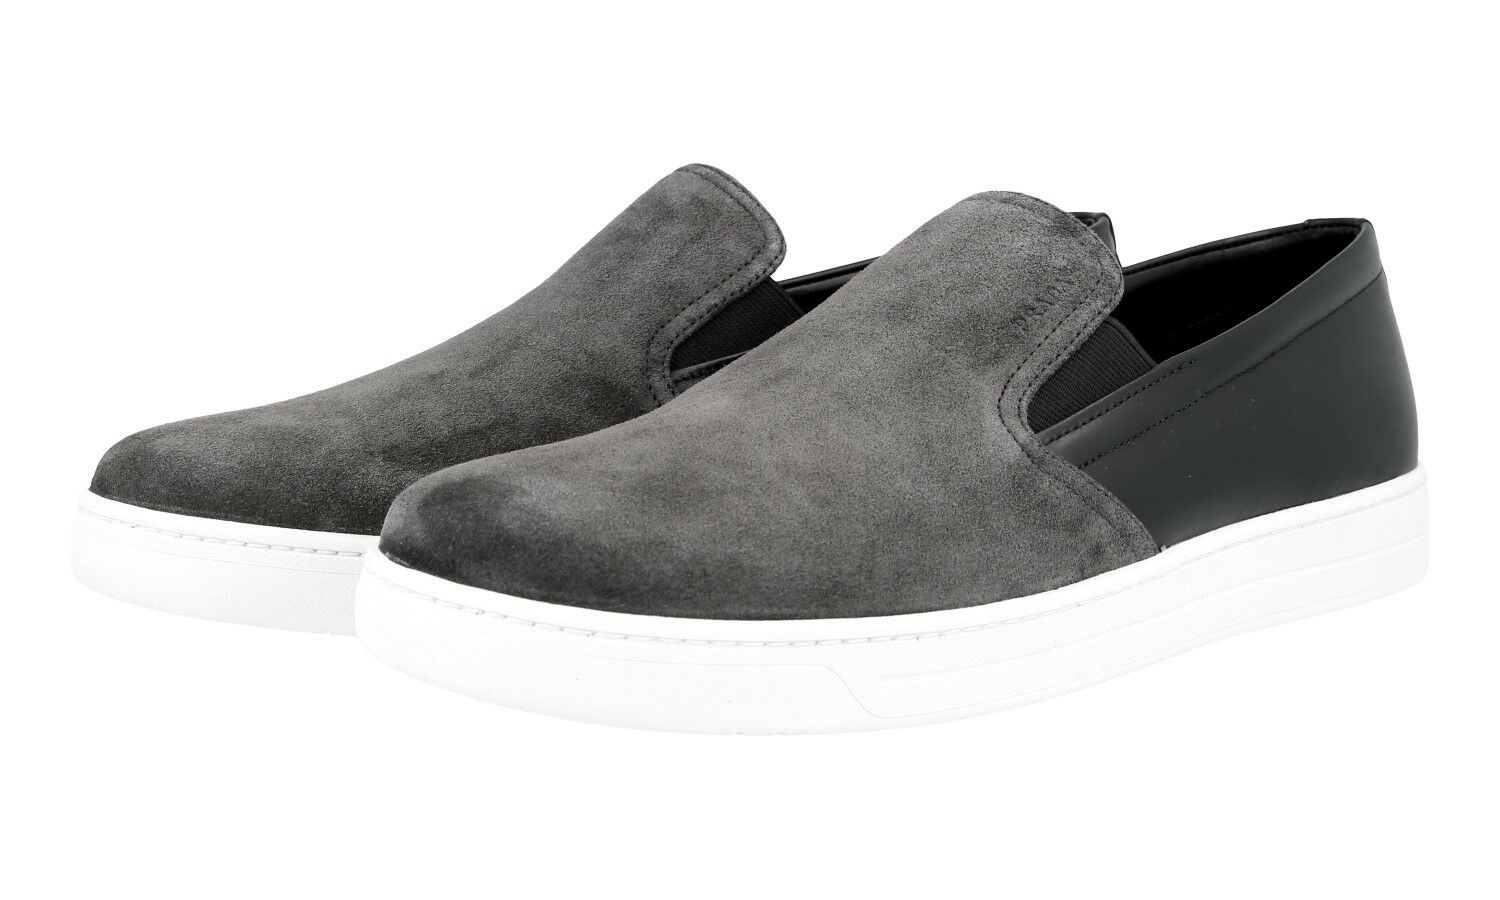 AUTH LUXURY PRADA 9,5 SNEAKERS SHOES 4D2733 GREY SUEDE NEW 9,5 PRADA 43,5 44 d4bc65